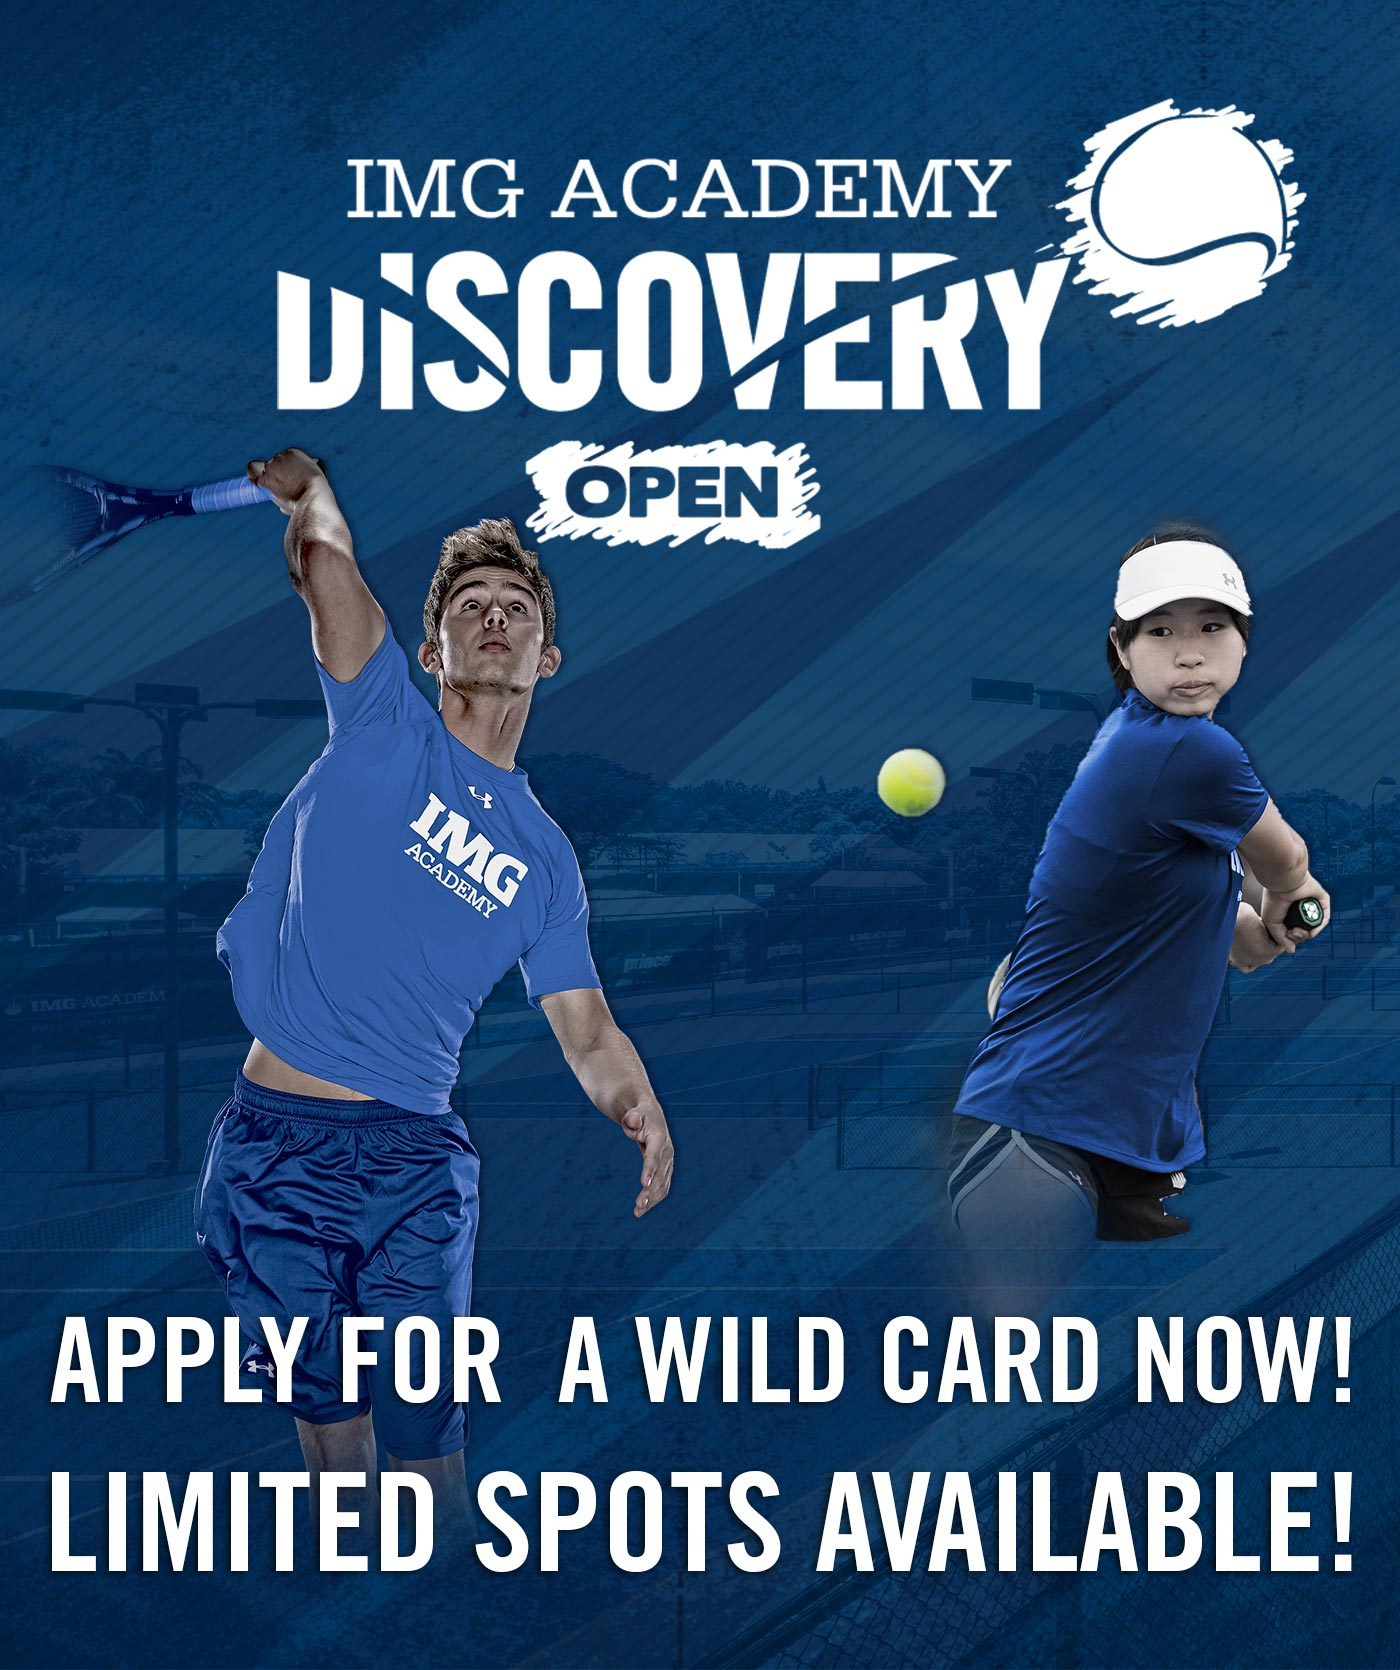 IMG Academy Discovery Open